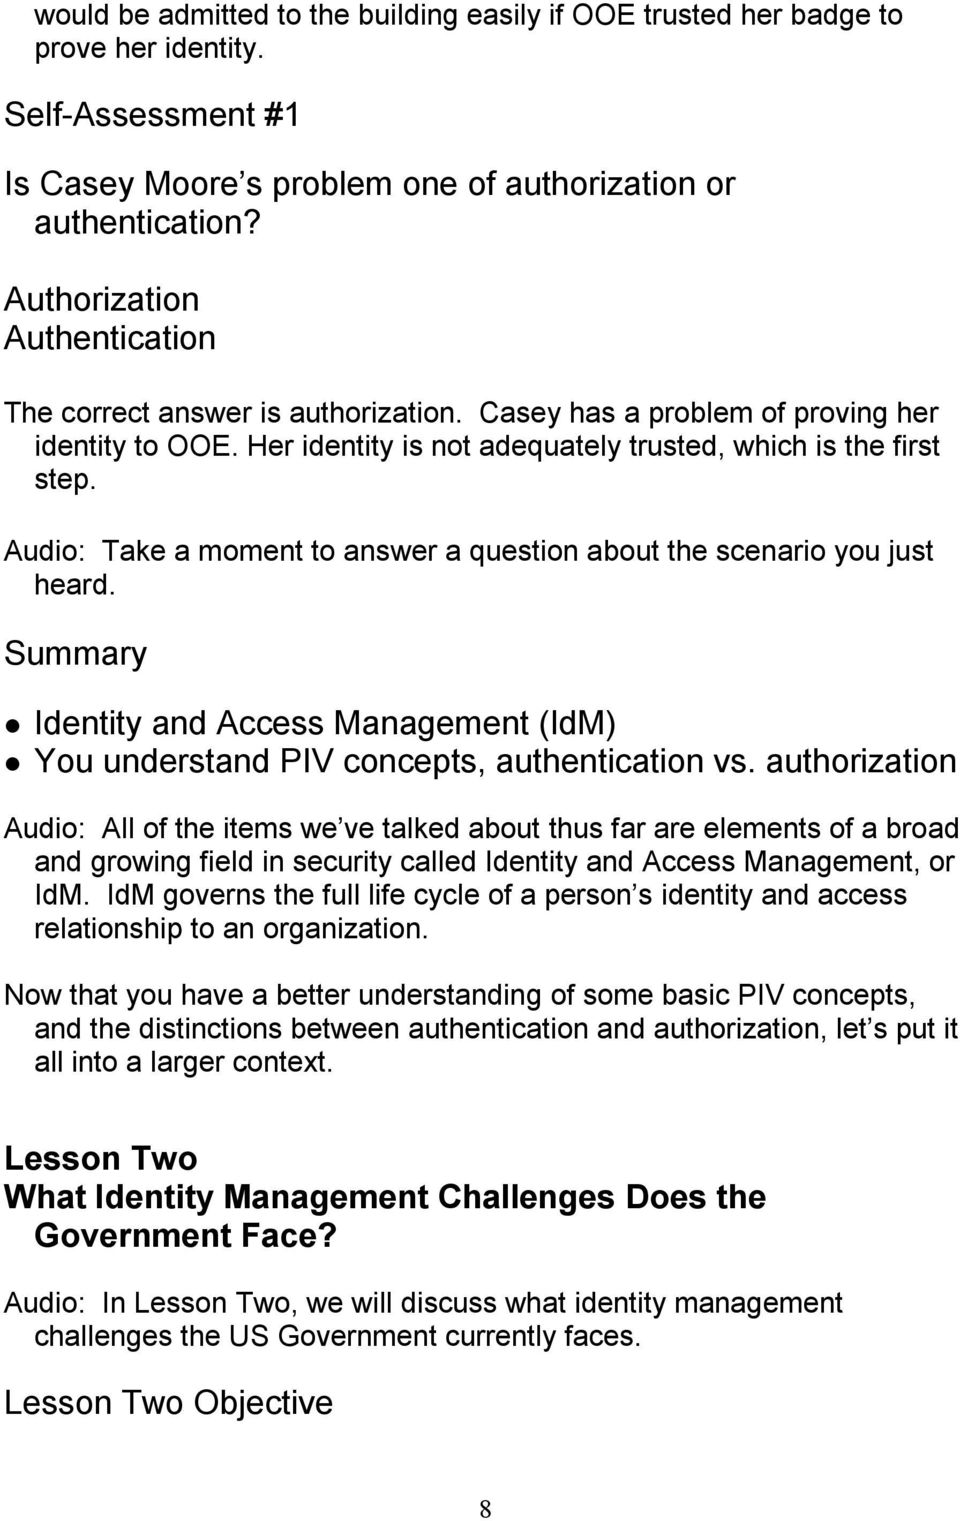 Audio: Take a moment to answer a question about the scenario you just heard. Summary Identity and Access Management (IdM) You understand PIV concepts, authentication vs.